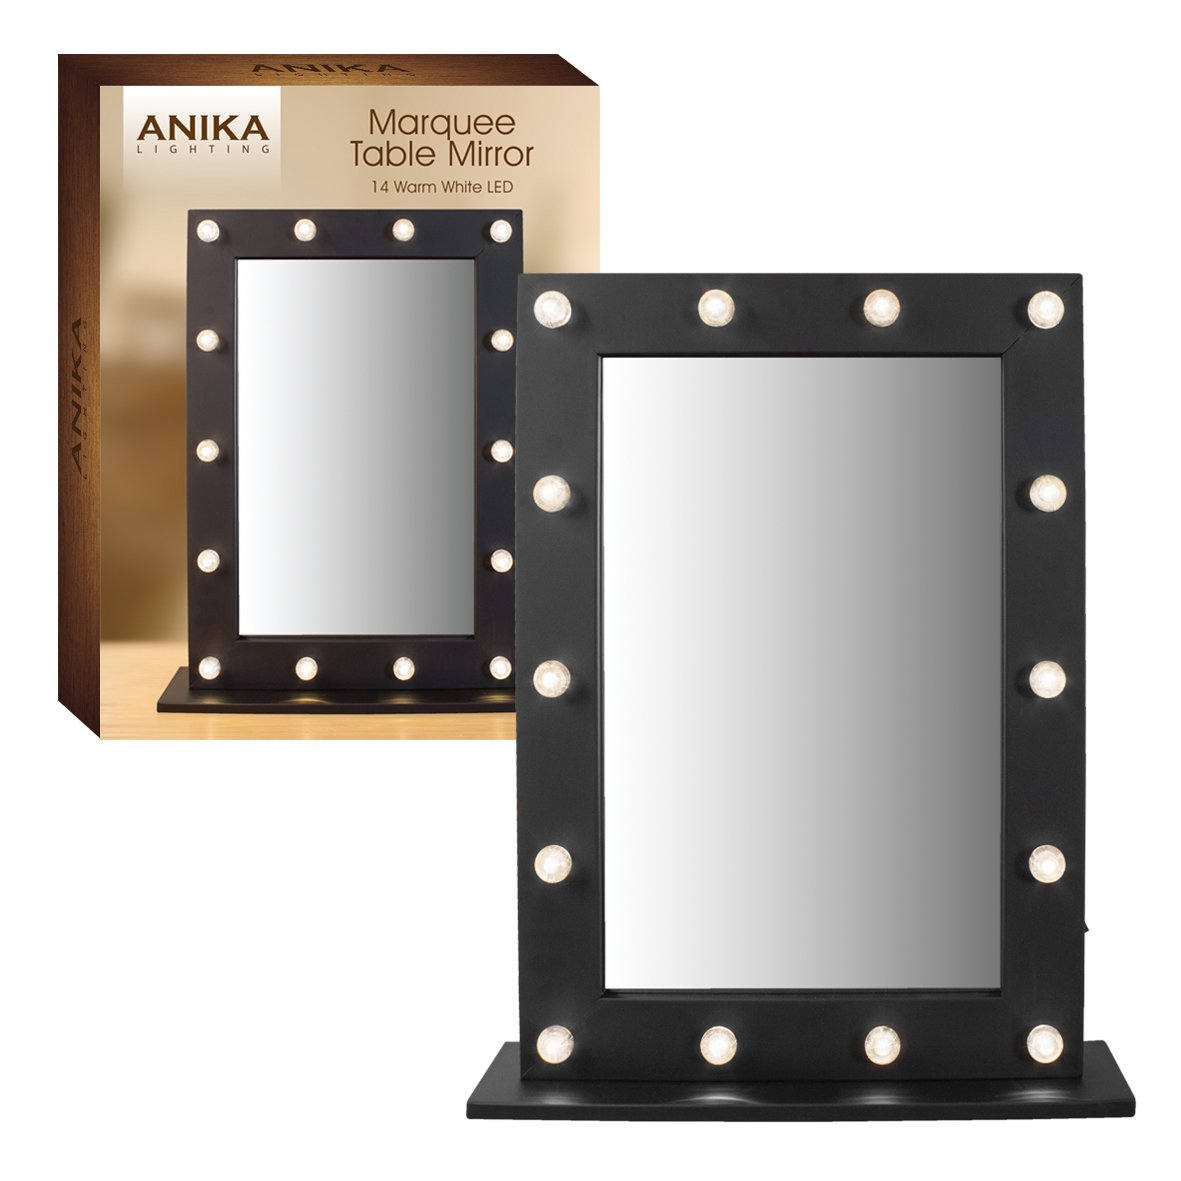 Anika Battery Operated Free Standing LED Marquee Mirror, Black Benross 62630